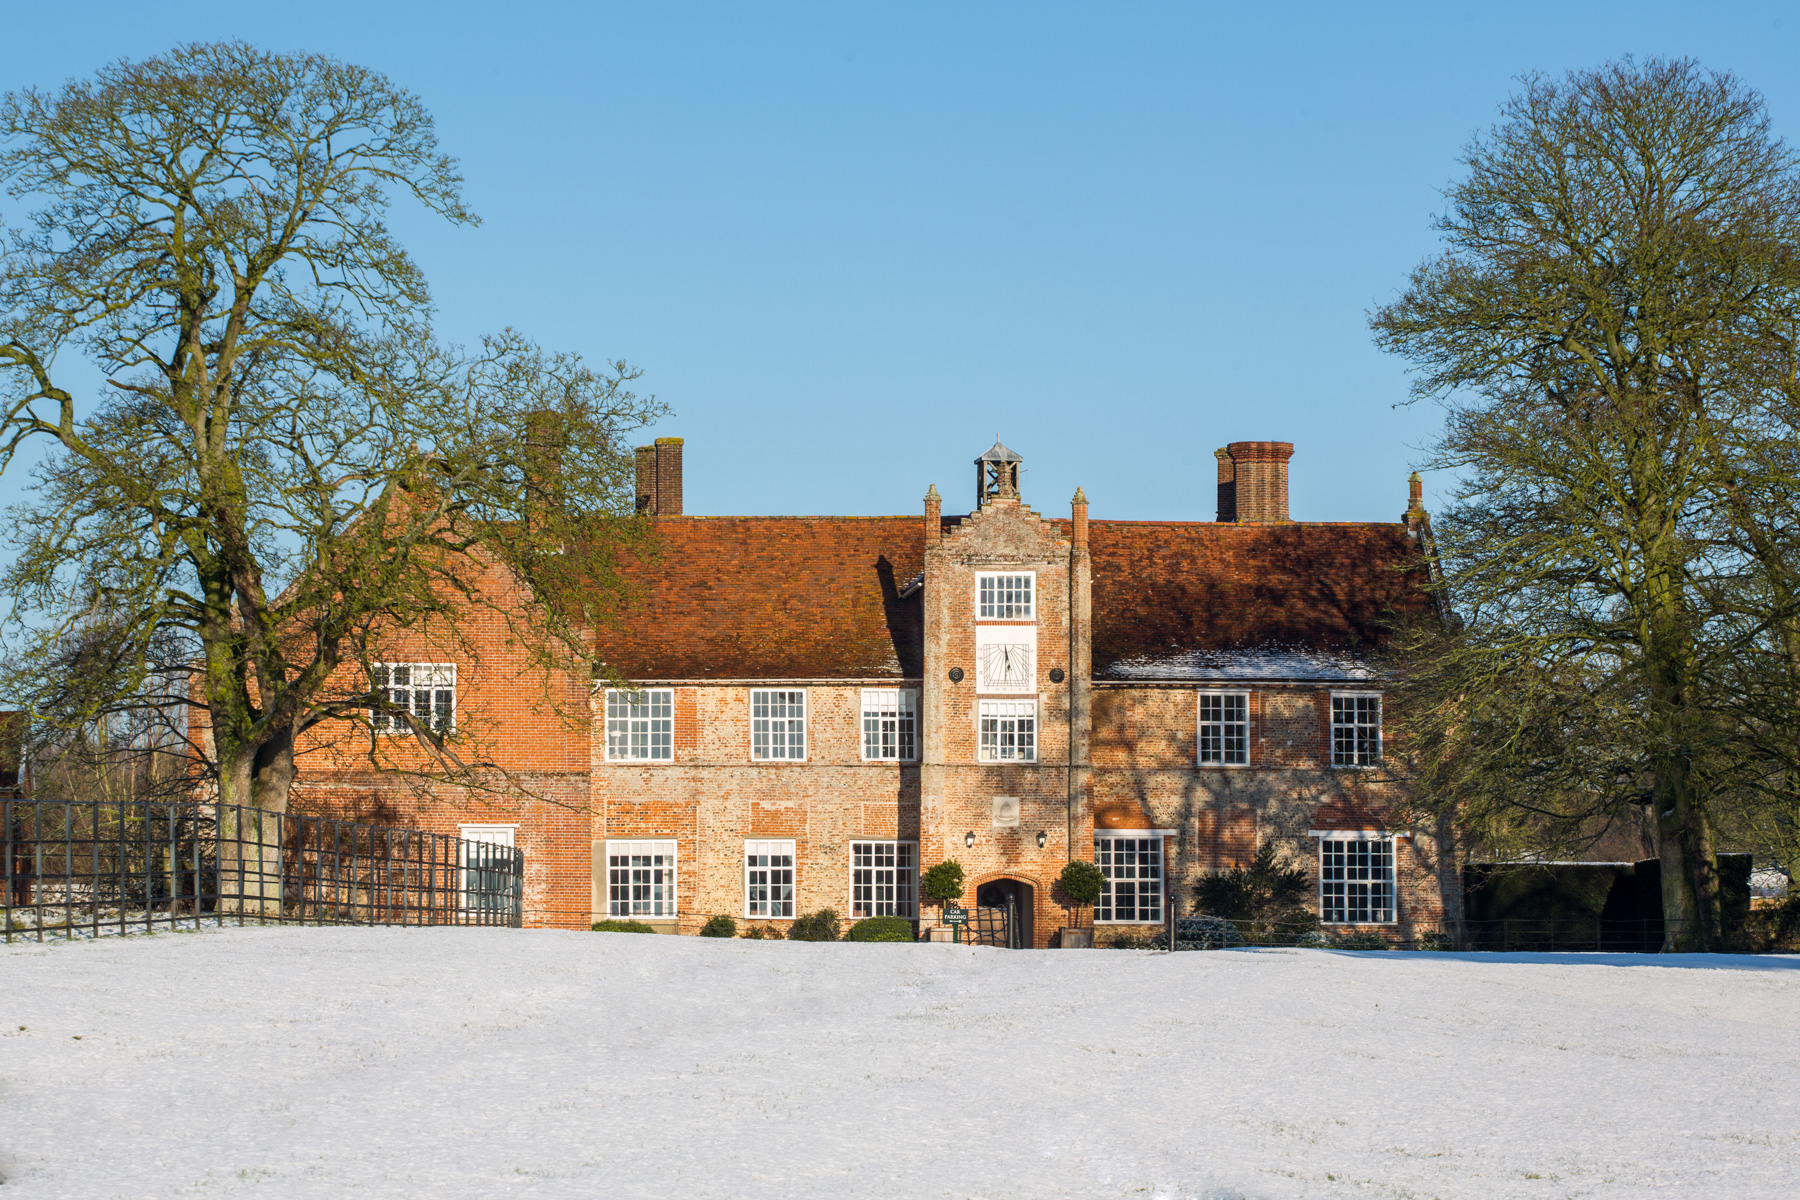 Bruisyard Hall in the Snow. Photo To Be Credited To Dominic Whiten www.dominicwhiten.co.uk-5003.jpg